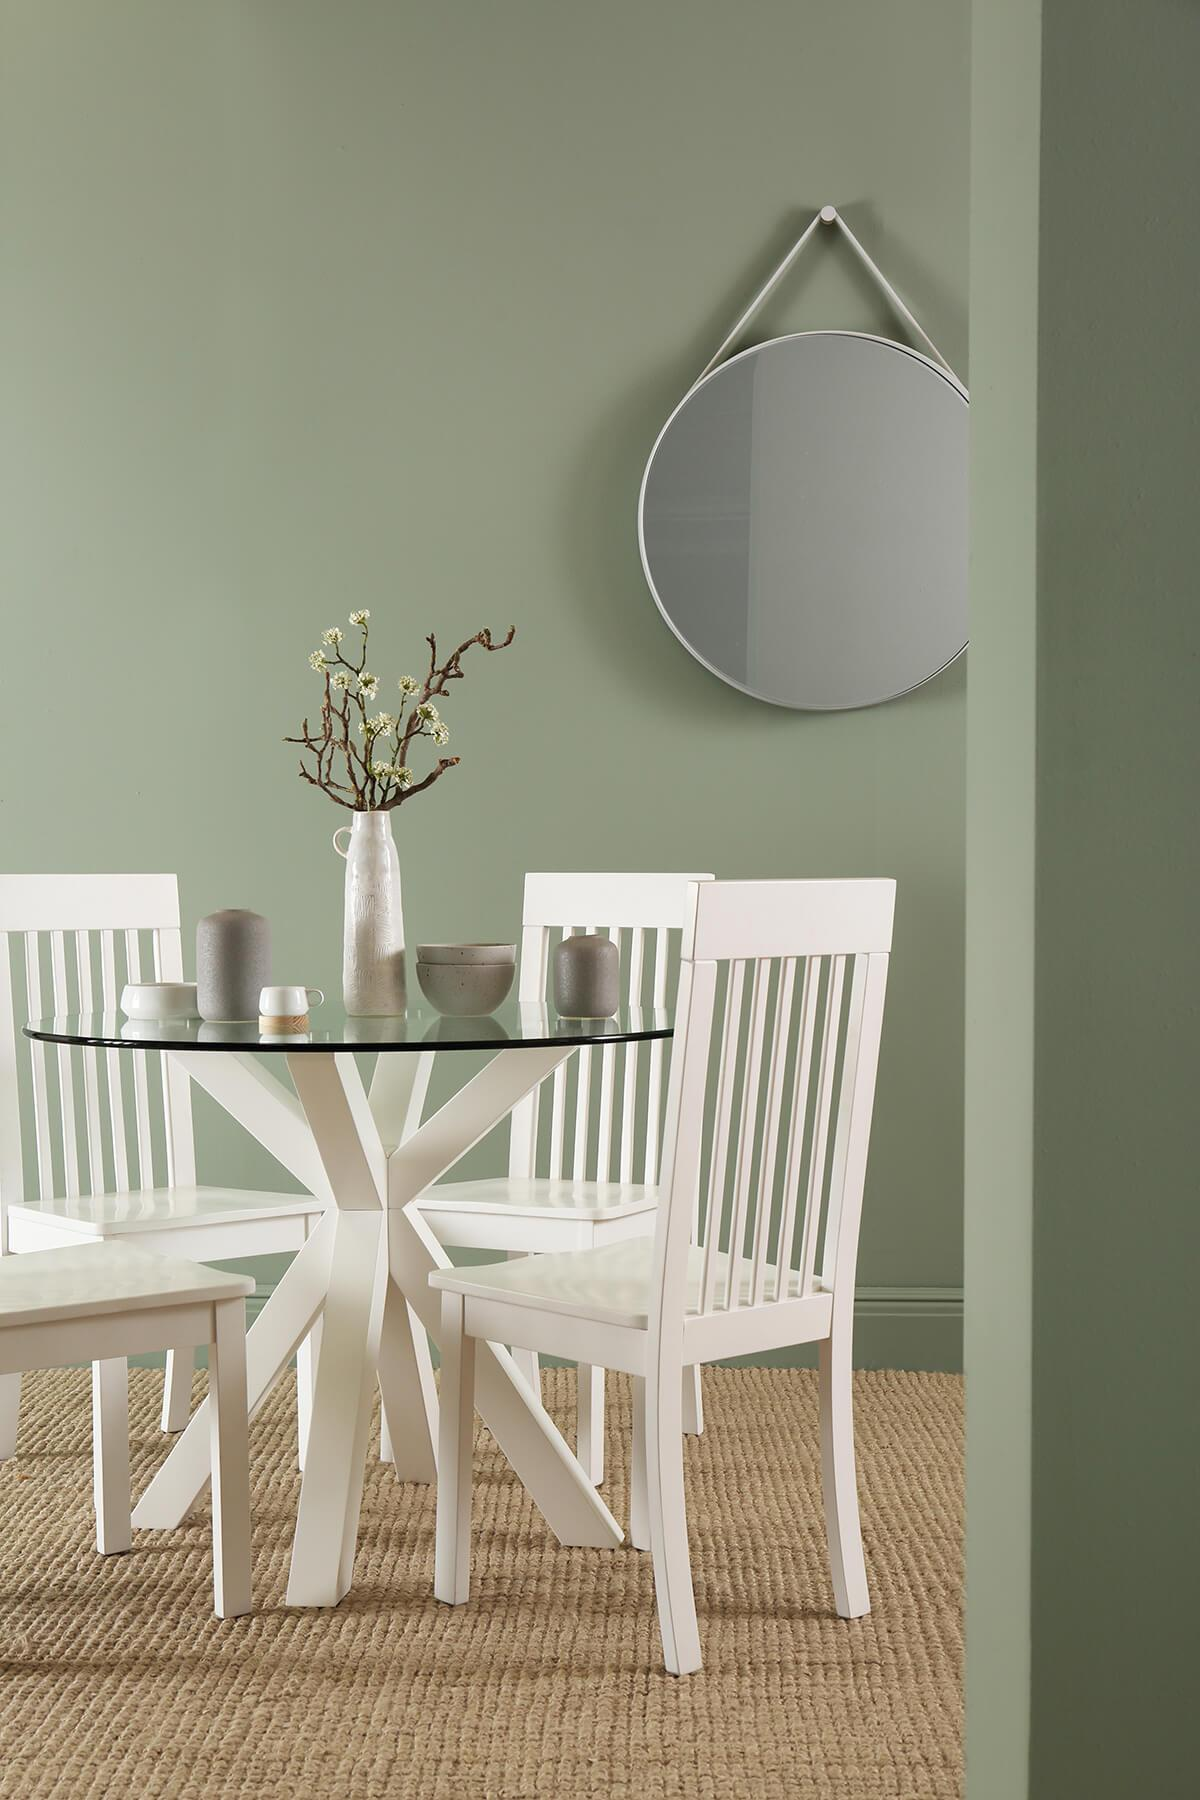 Hatton white and glass Oxford white chairs close up